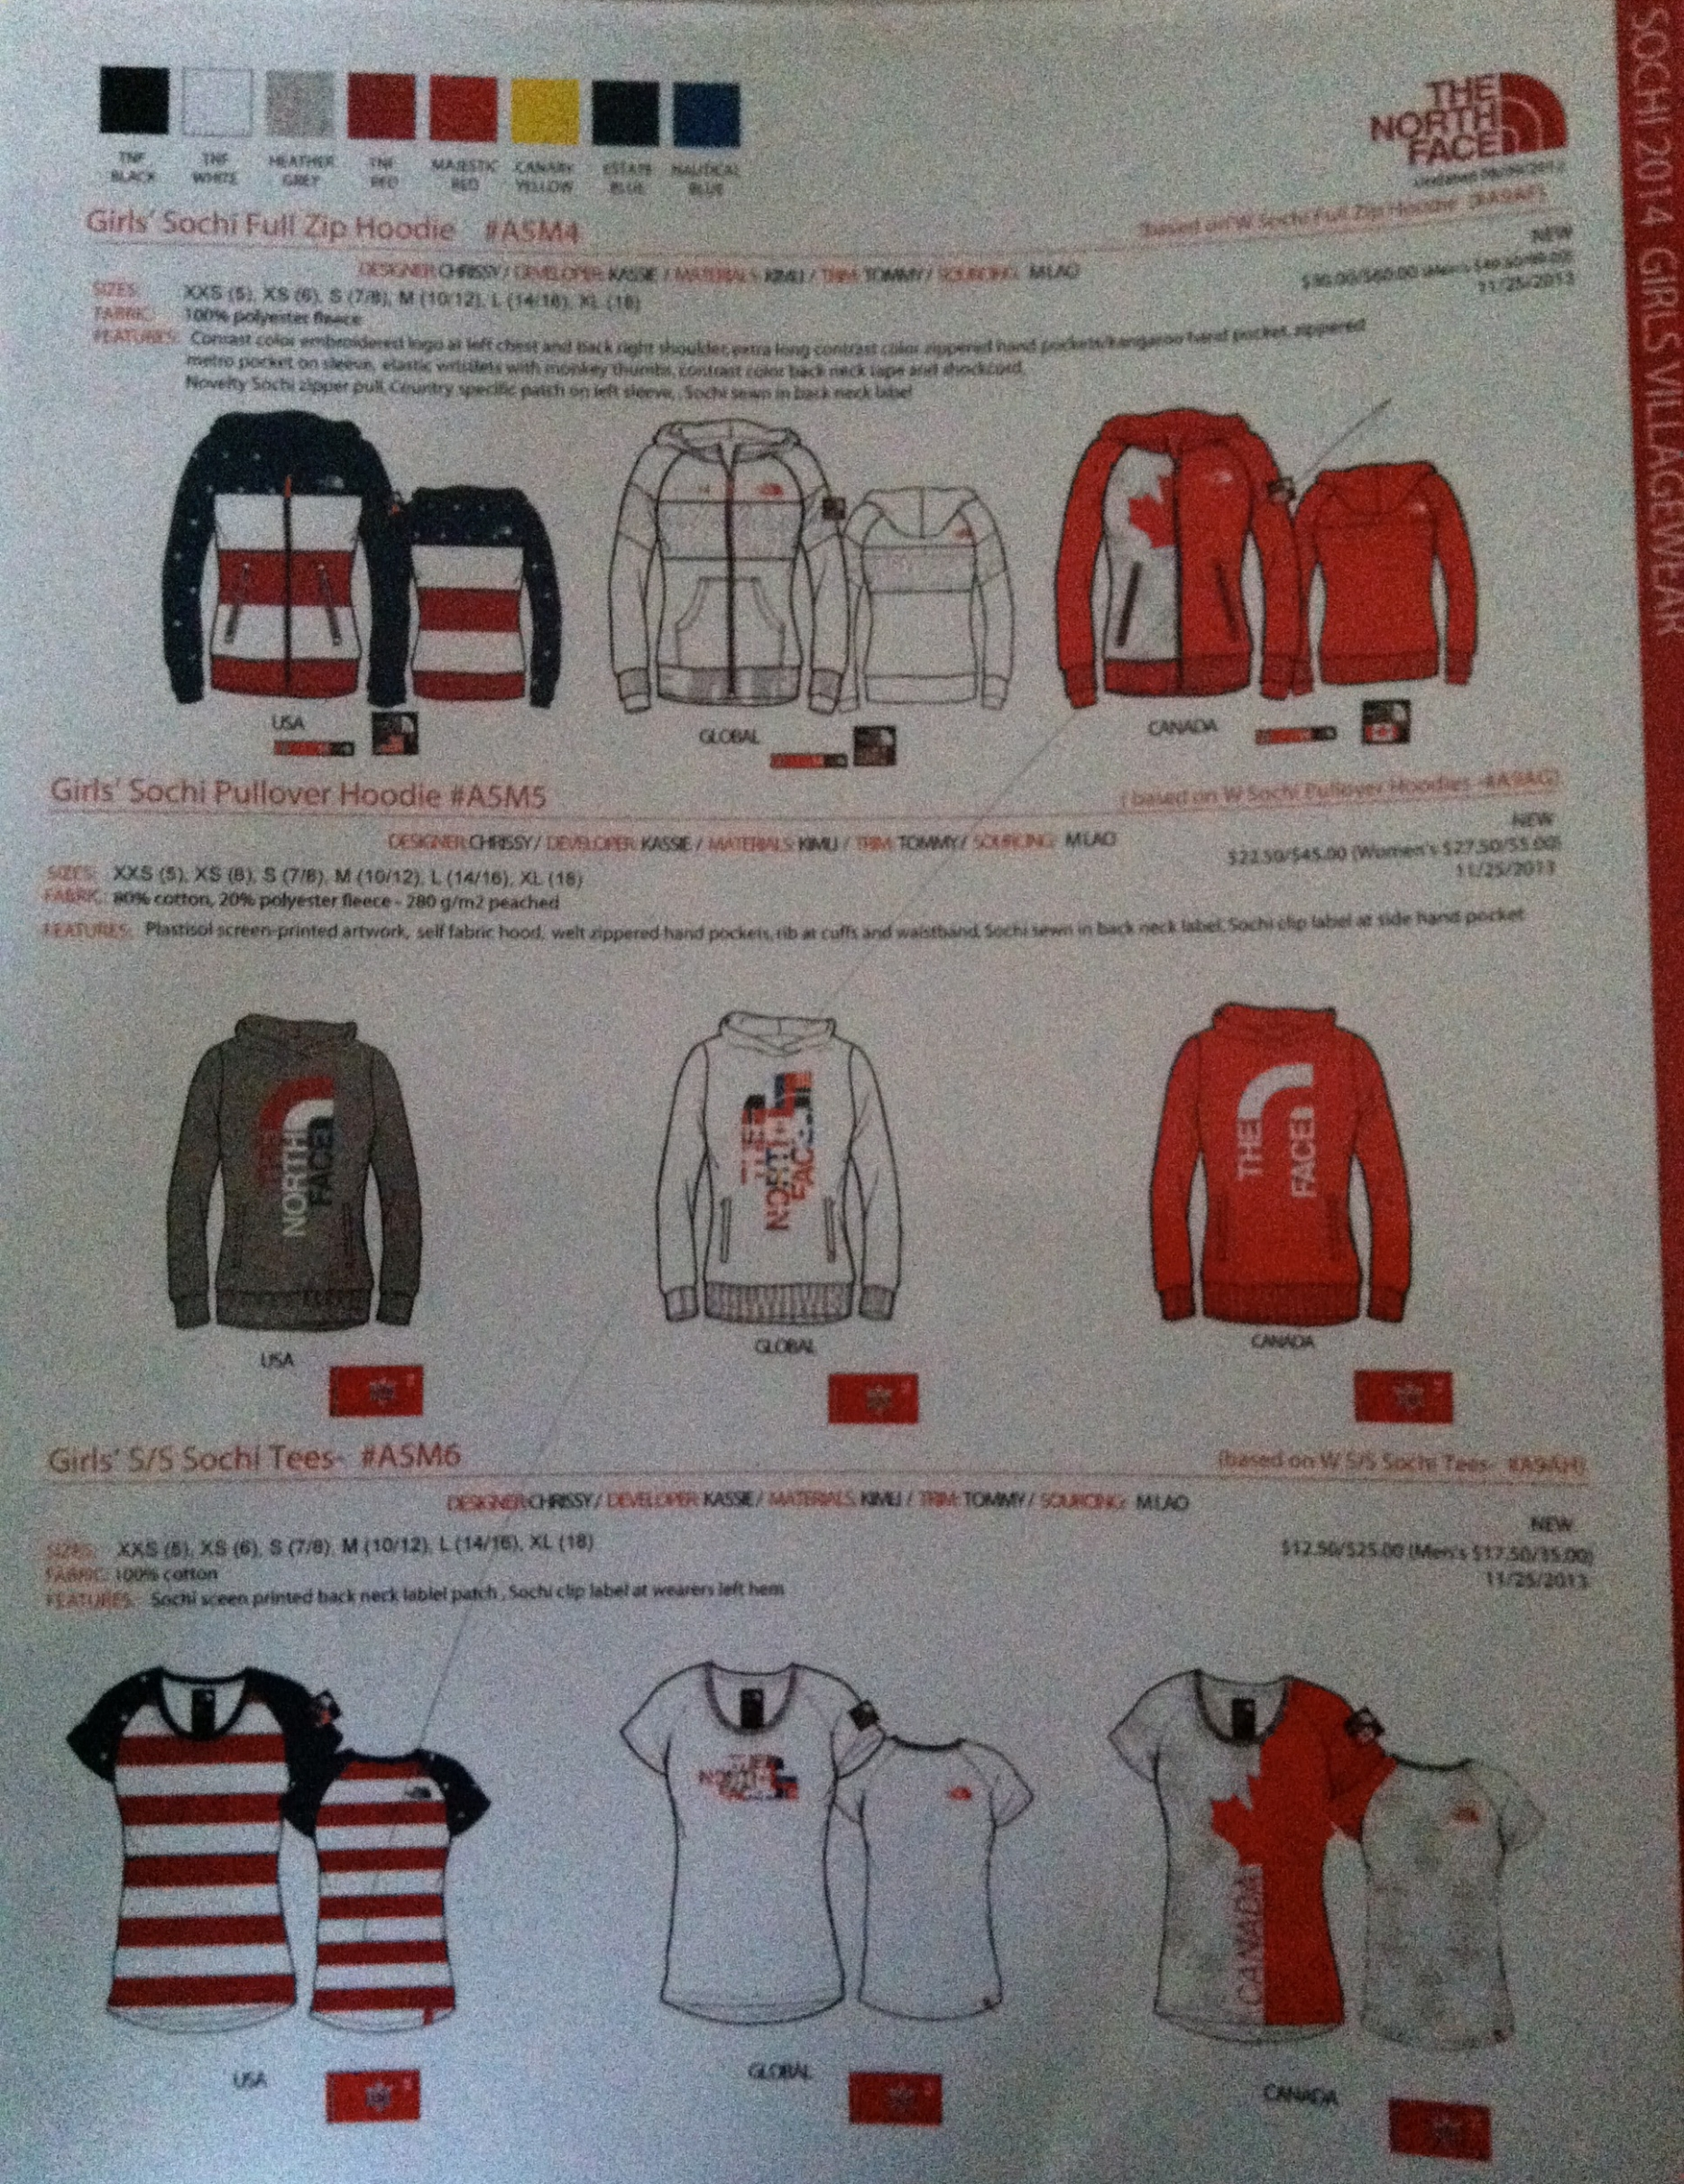 2014 OLYMPICS VILLAGEWEAR BY THE NORTH FACE